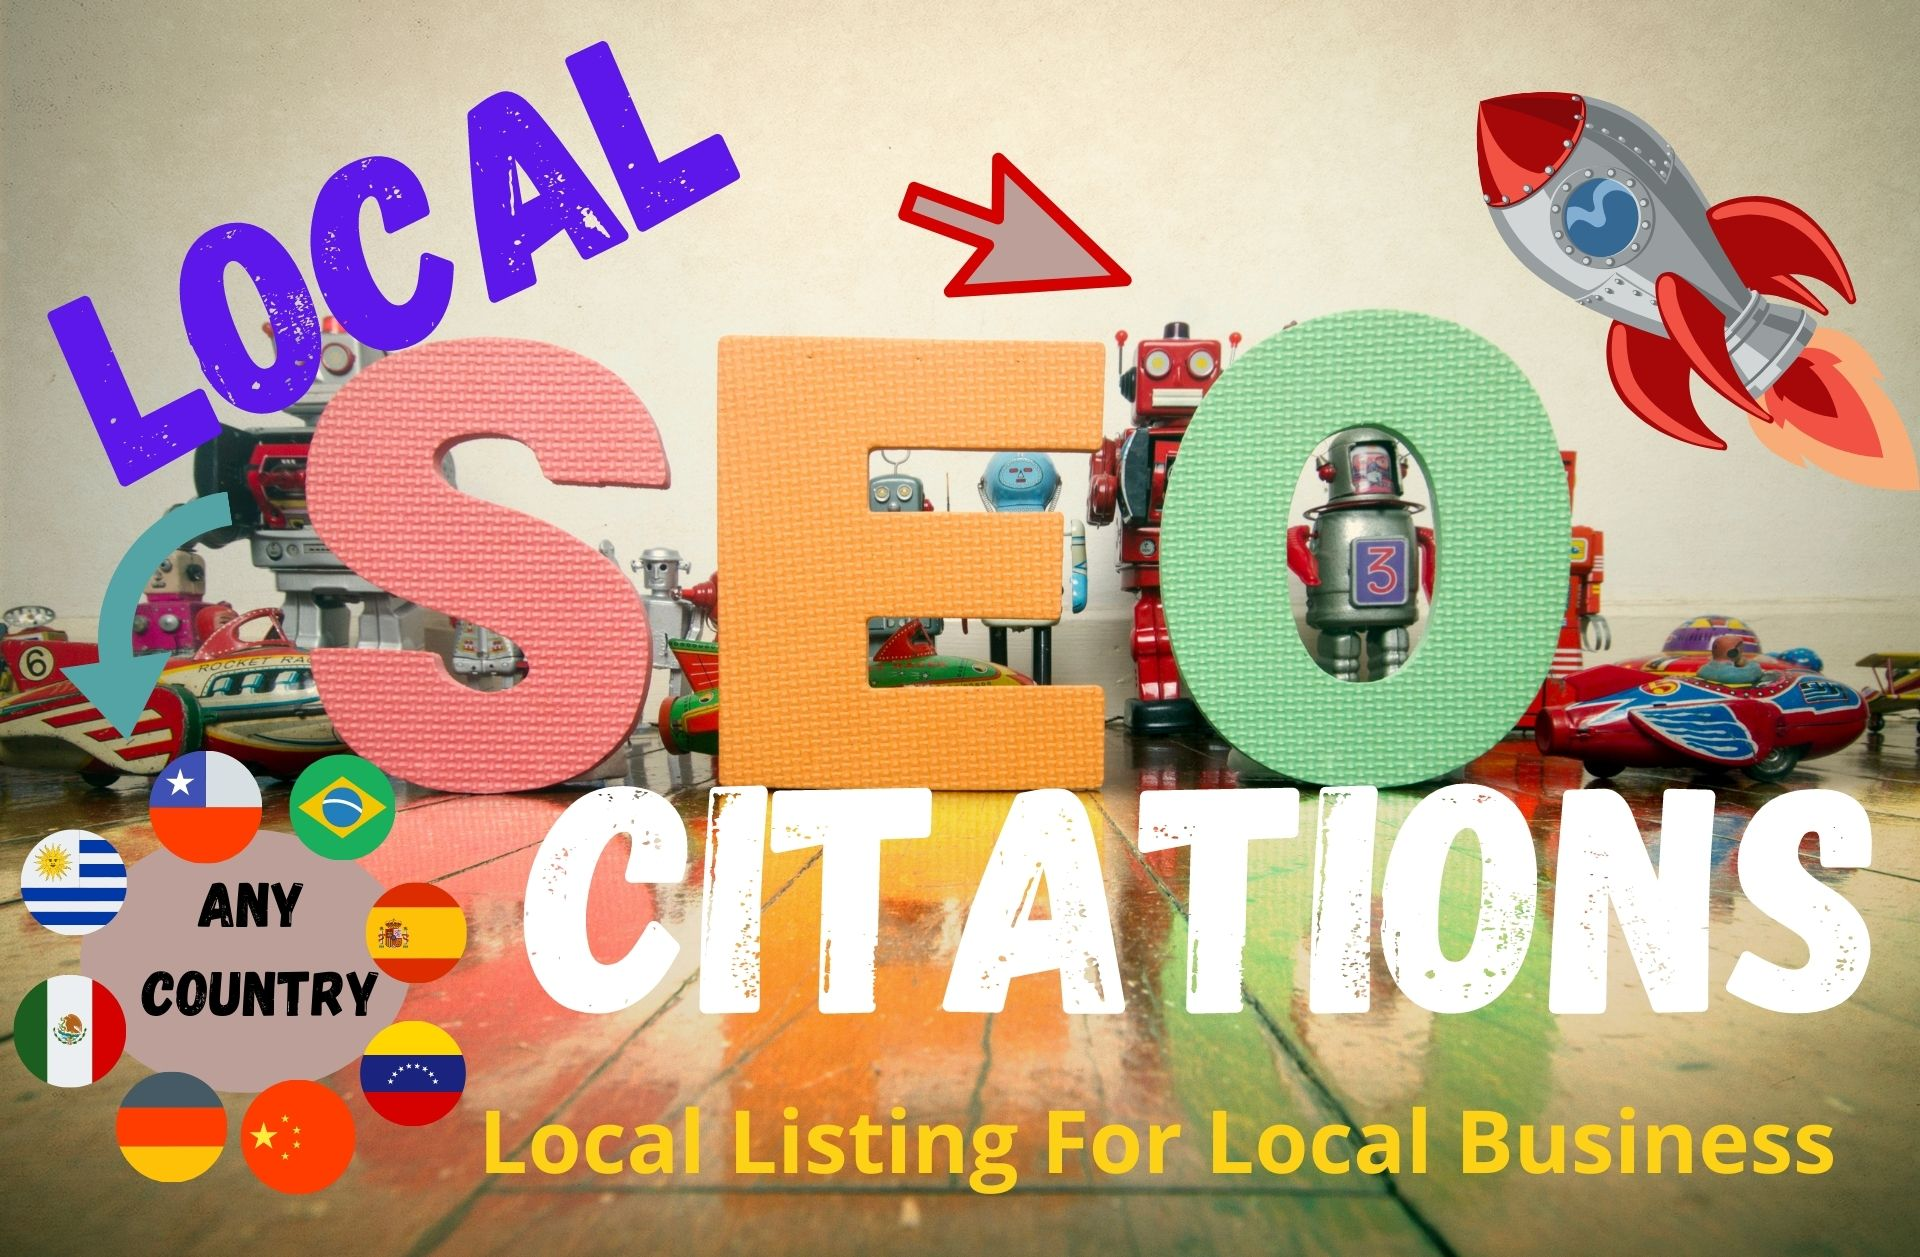 I Will Create 50 Local Citations Or Local Listing For Any Country, Rank Your Business Website.